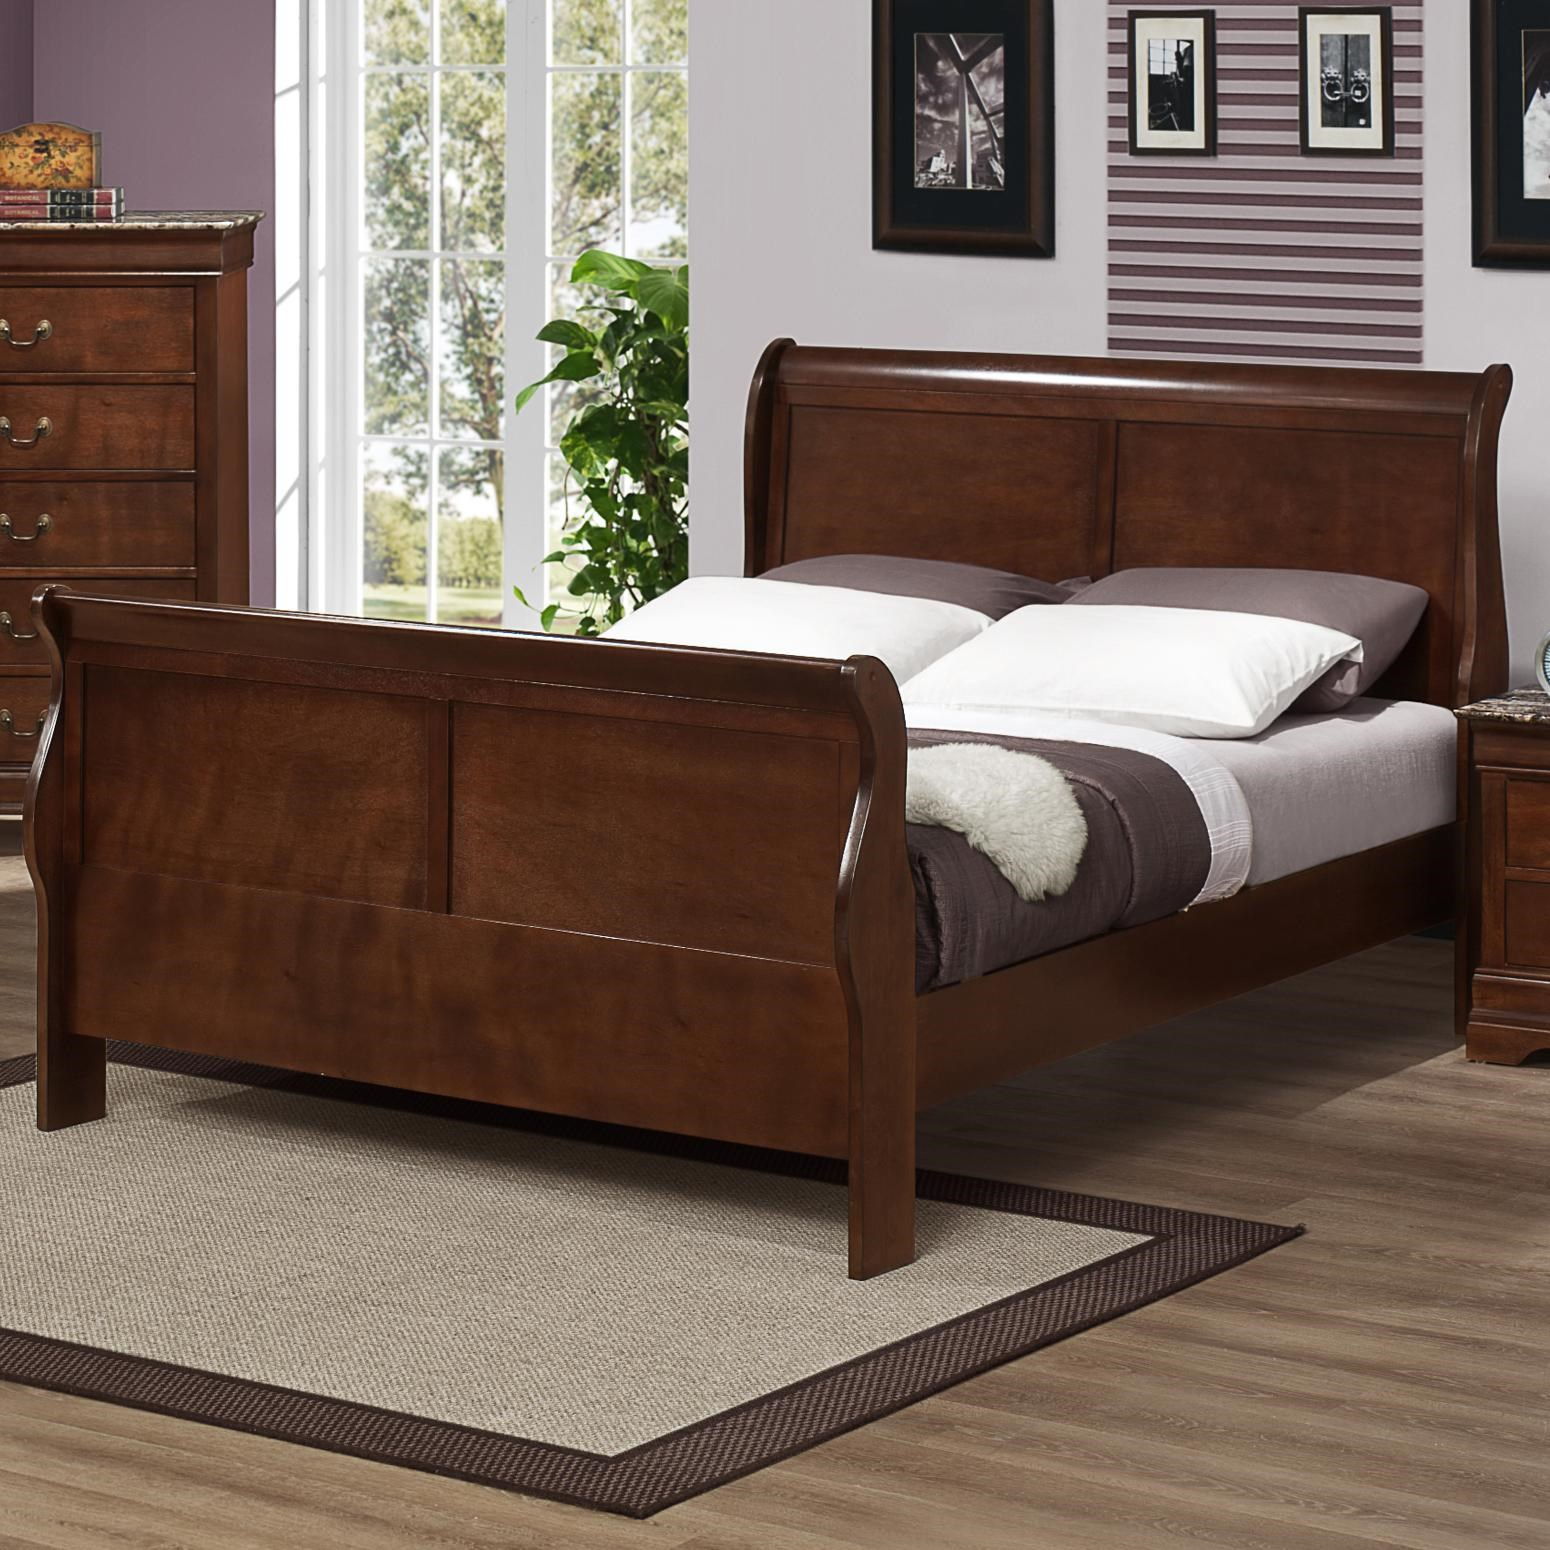 Austin Group Marseille Queen Sleigh Bed With Curved Posts